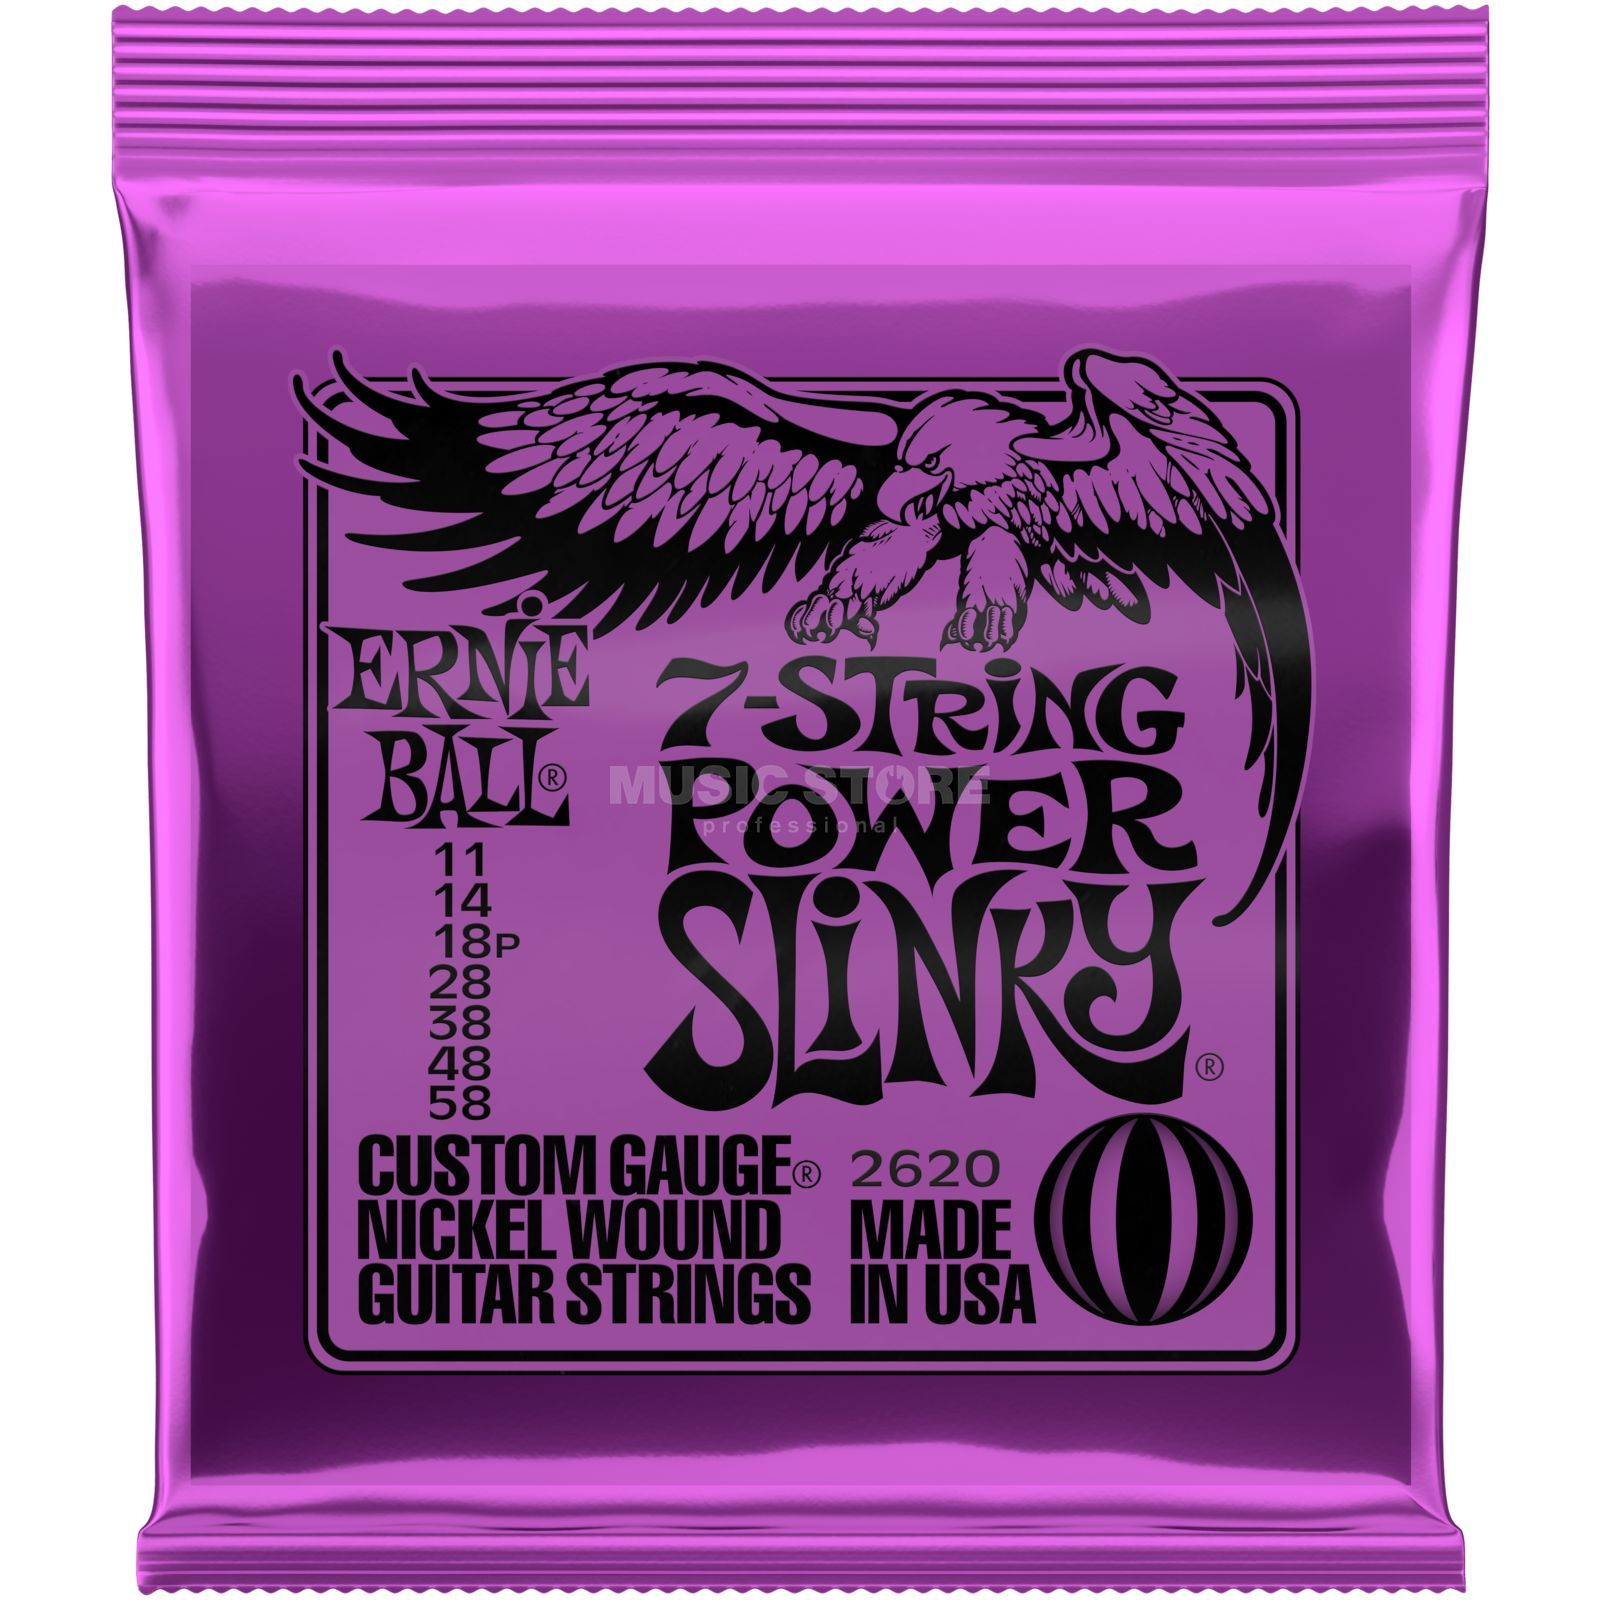 Ernie Ball EB2620 11-58 7-string Power Slinky Nickel Plated Produktbillede